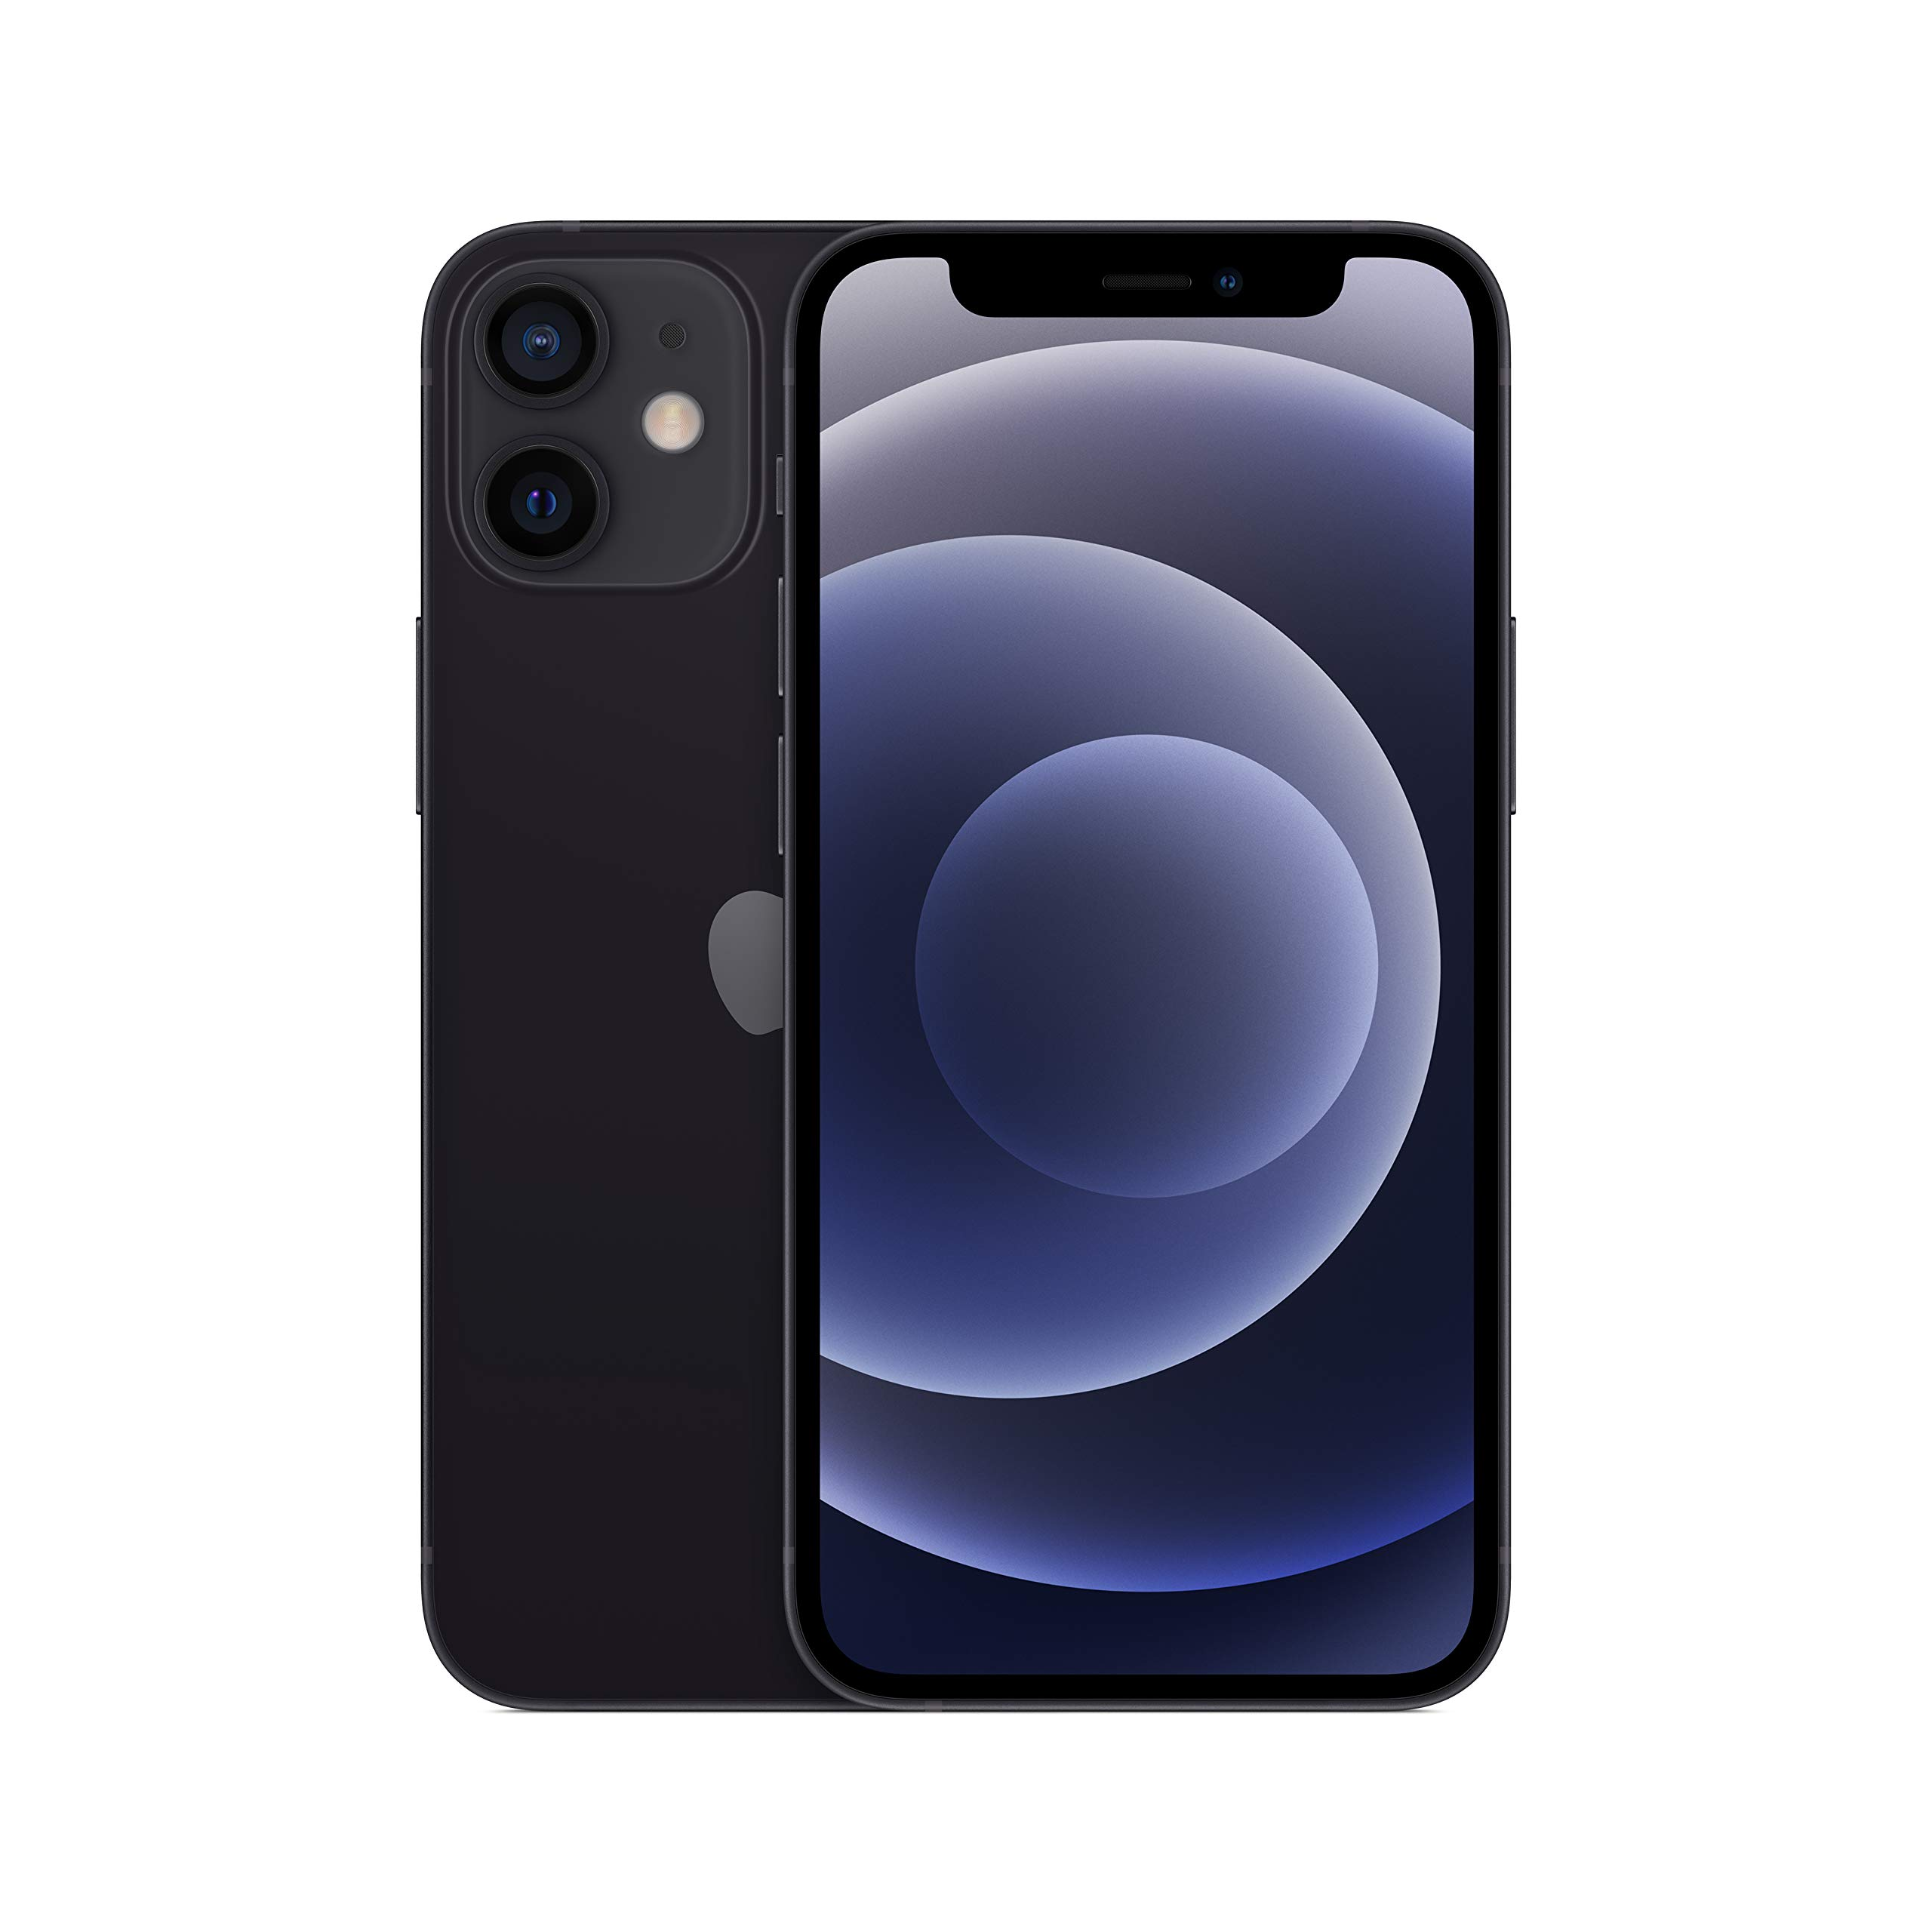 Apple's iPhone 12, 12 Pro, 12 Pro Max and 12 Mini: All You Need to Know